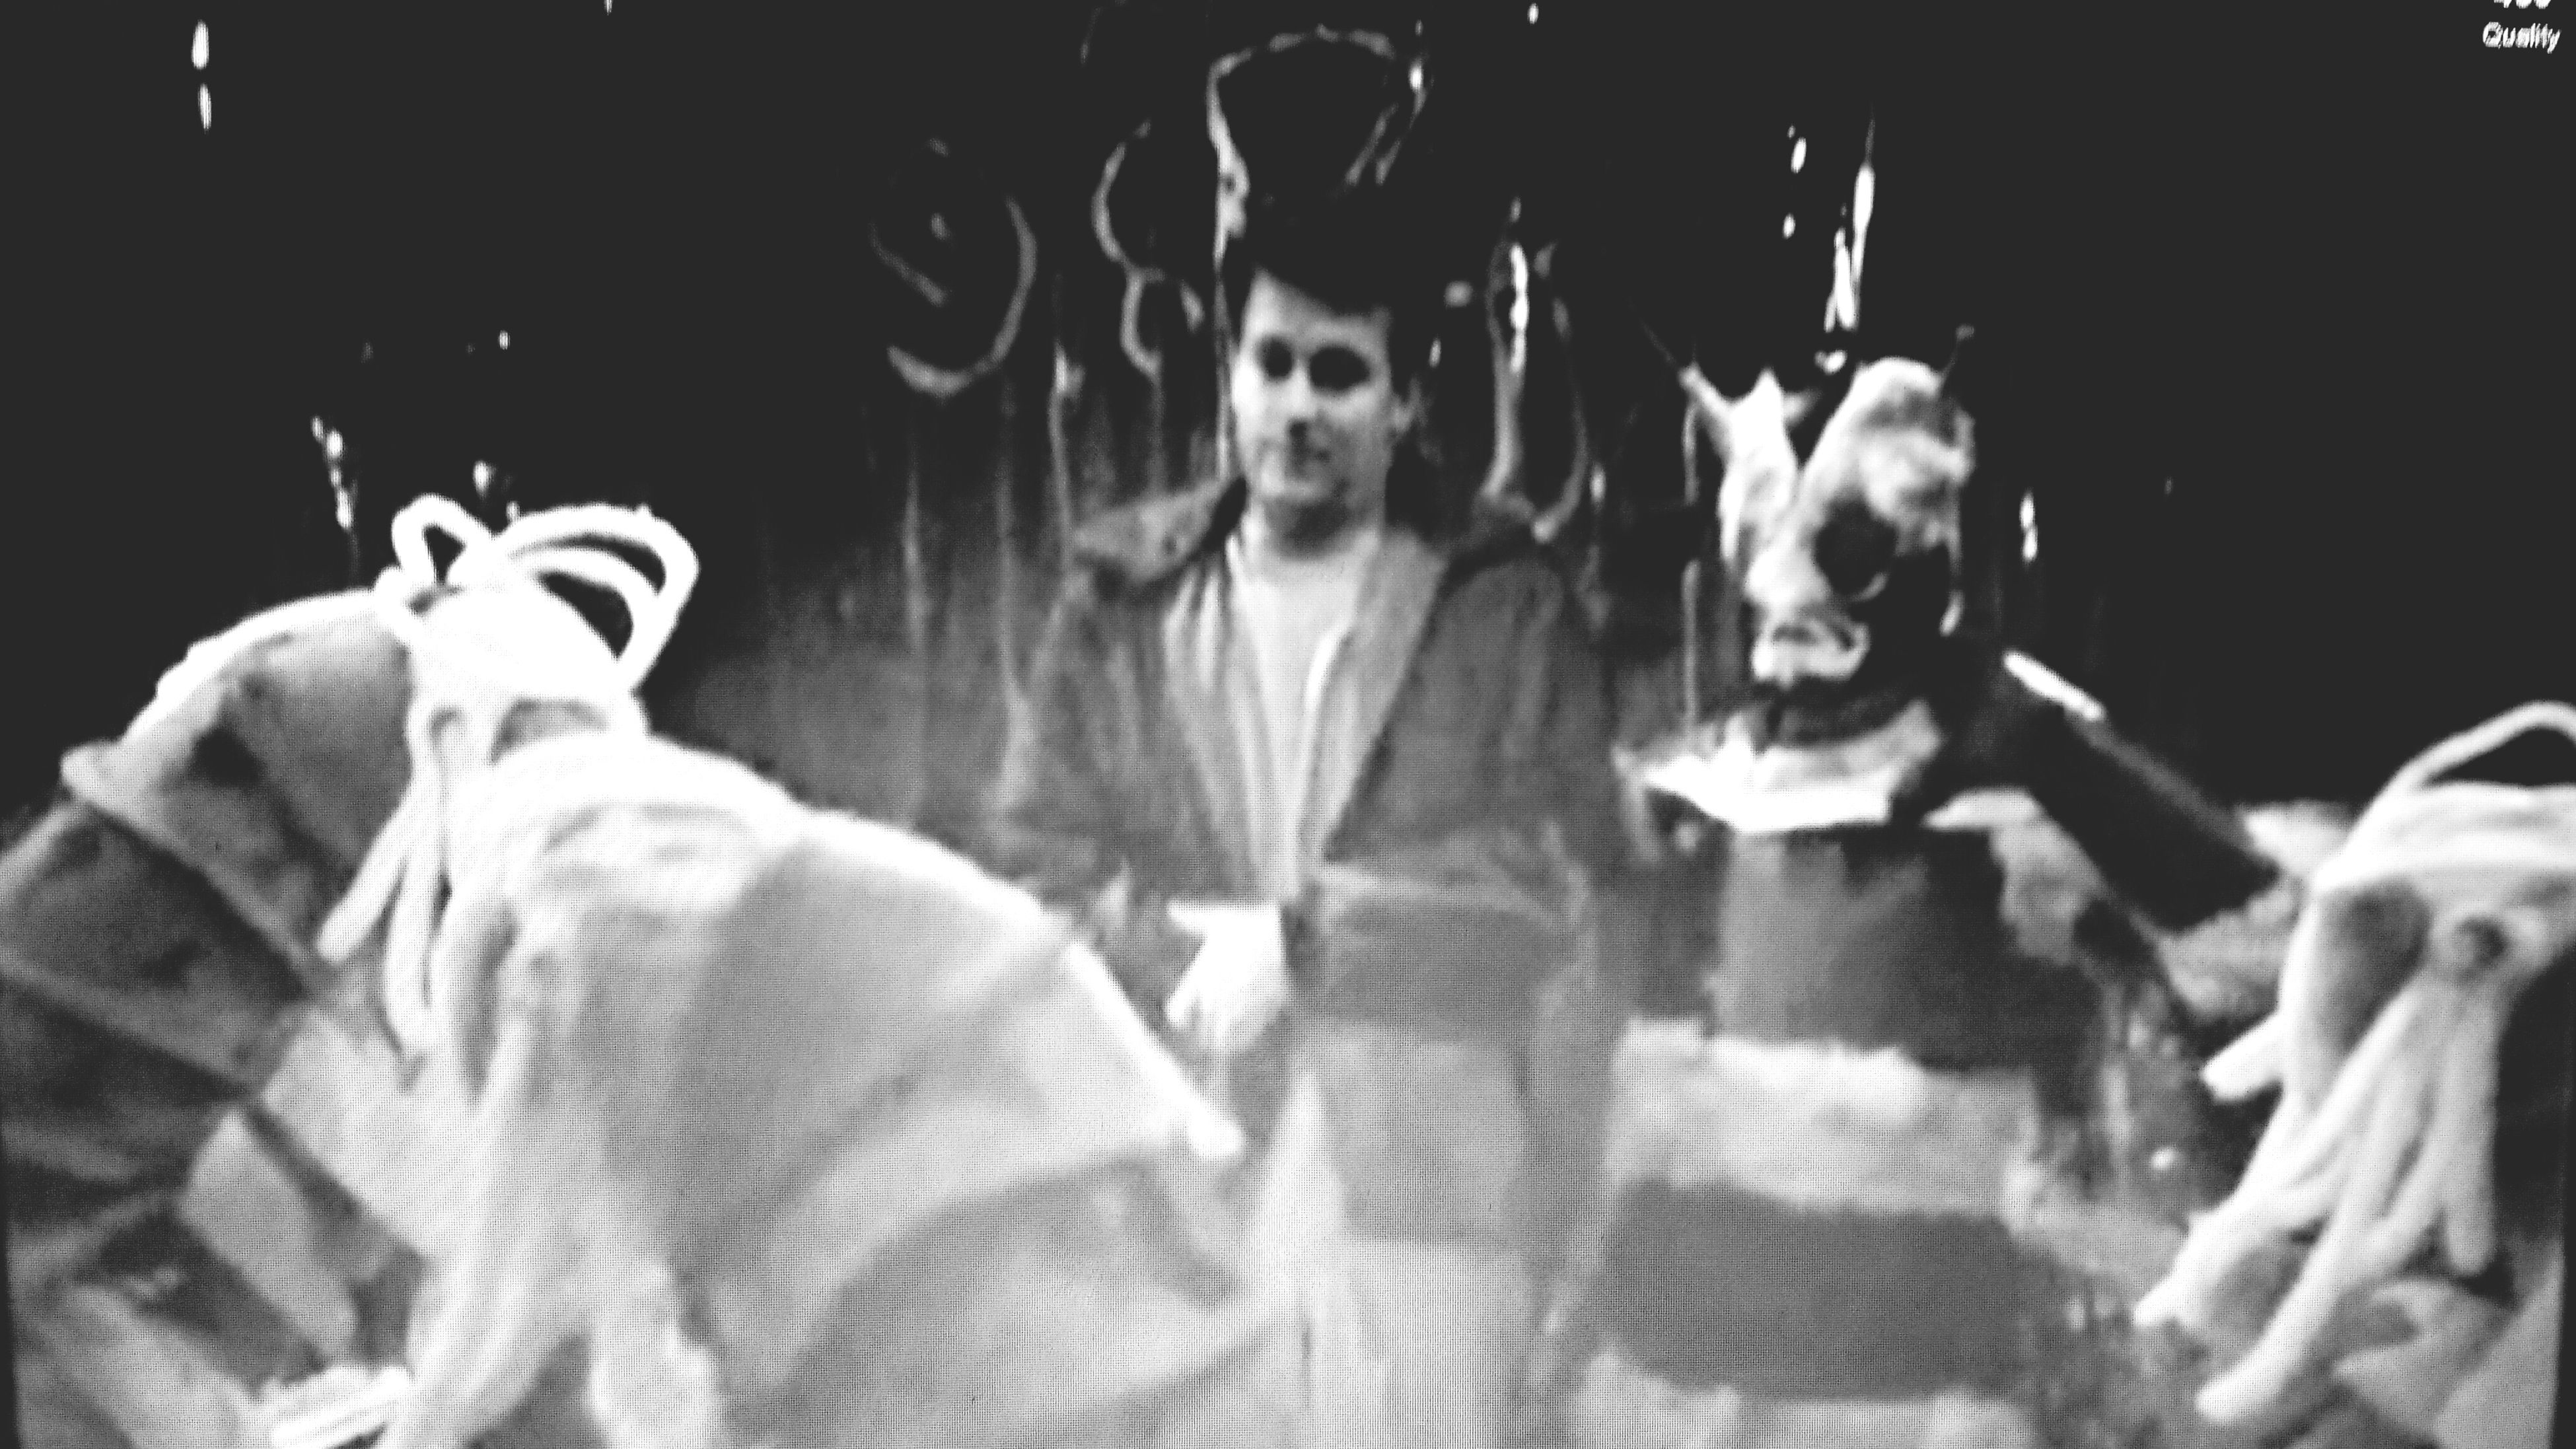 Doctor Who Classic 1965 Crater Of Needles Menoptera Optera Ian Chesterton